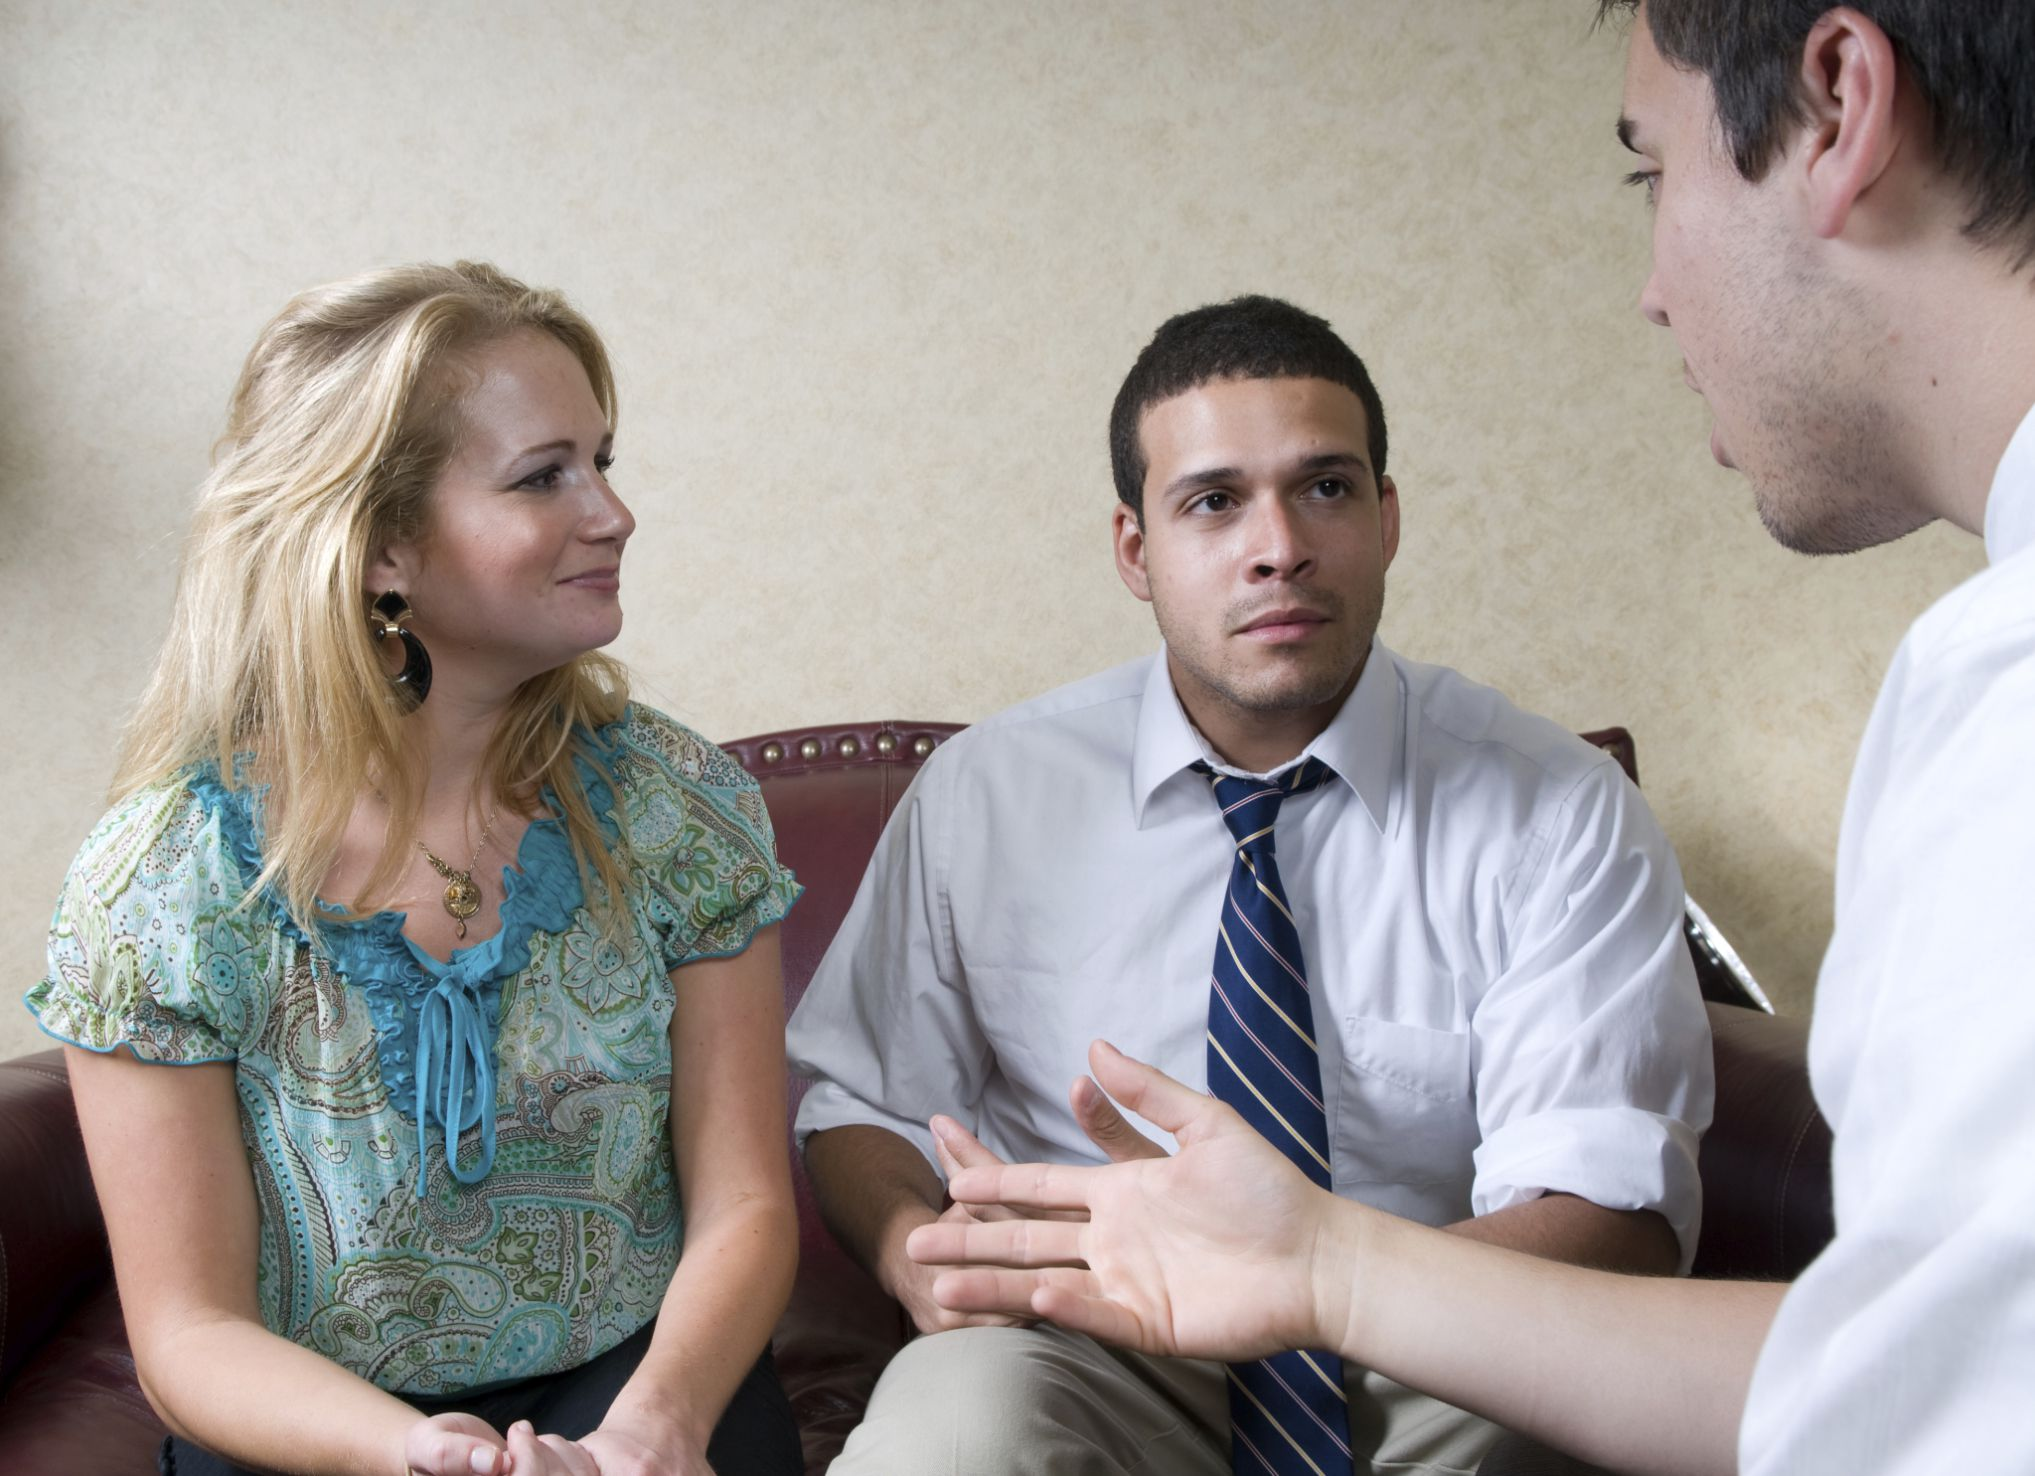 Motivational Interviewing As A Treatment For Addiction